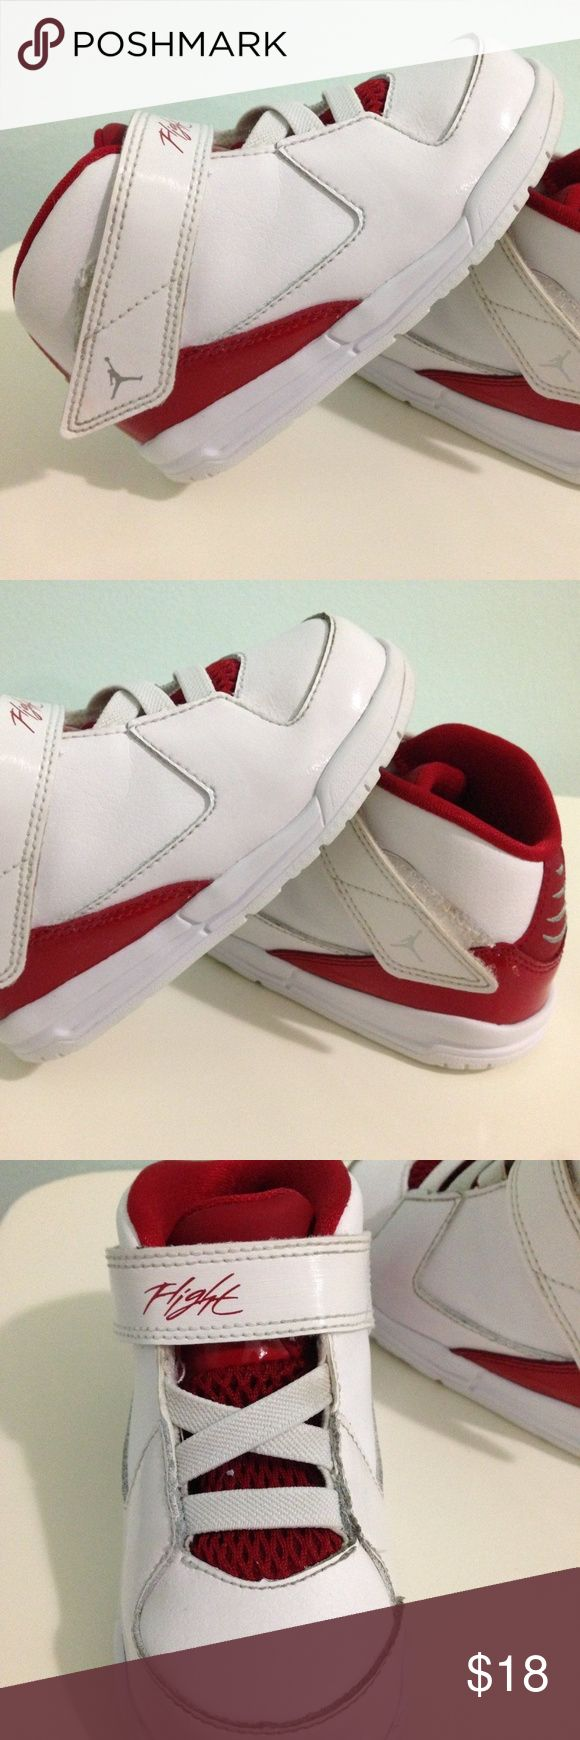 NIKE SIZE 7C AIR JORDAN FLIGHT BASKETBALL SNEAKERS EUC NIKE SIZE 7 C AIR JORDAN FLIGHT 705893-102 TODDLER BASKETBALL SNEAKERS  Excellent Pre-owned Condition! No Flaws! NIKE Shoes Sneakers